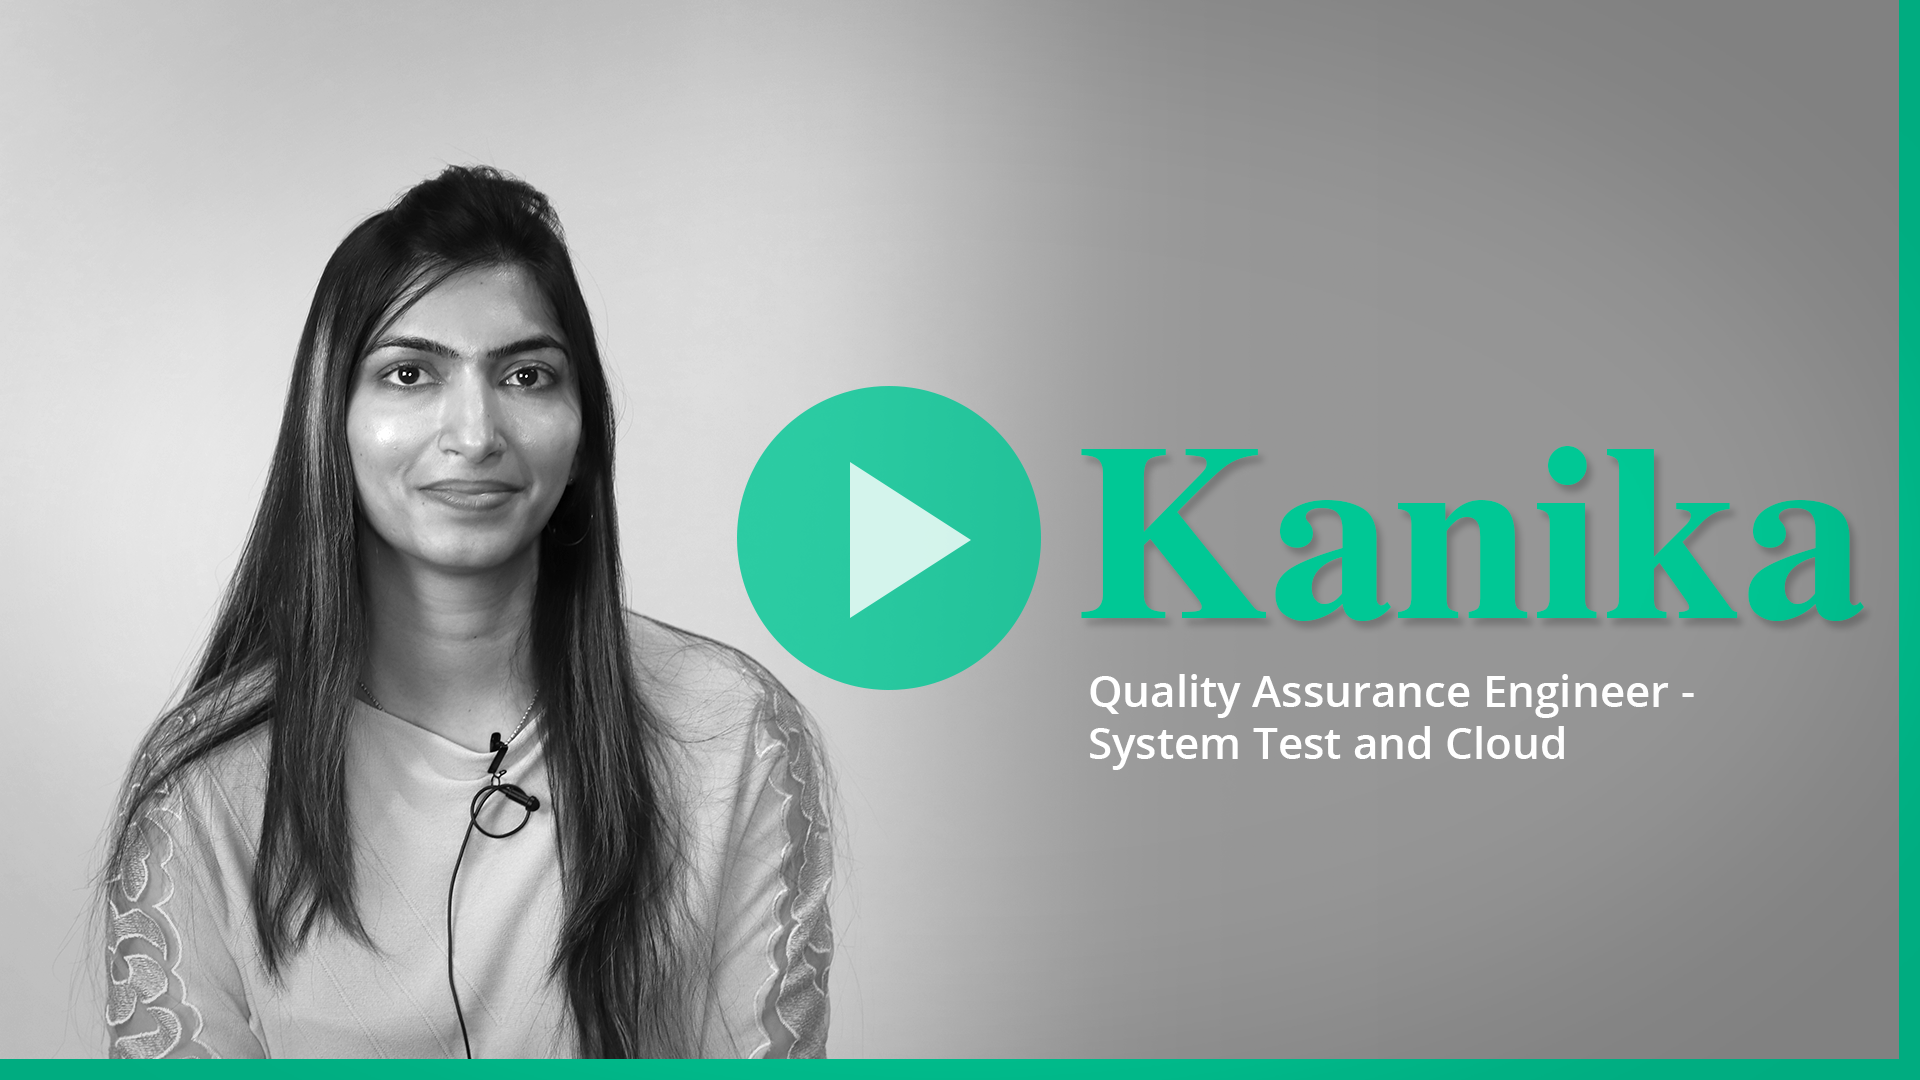 Kanika video for Career page